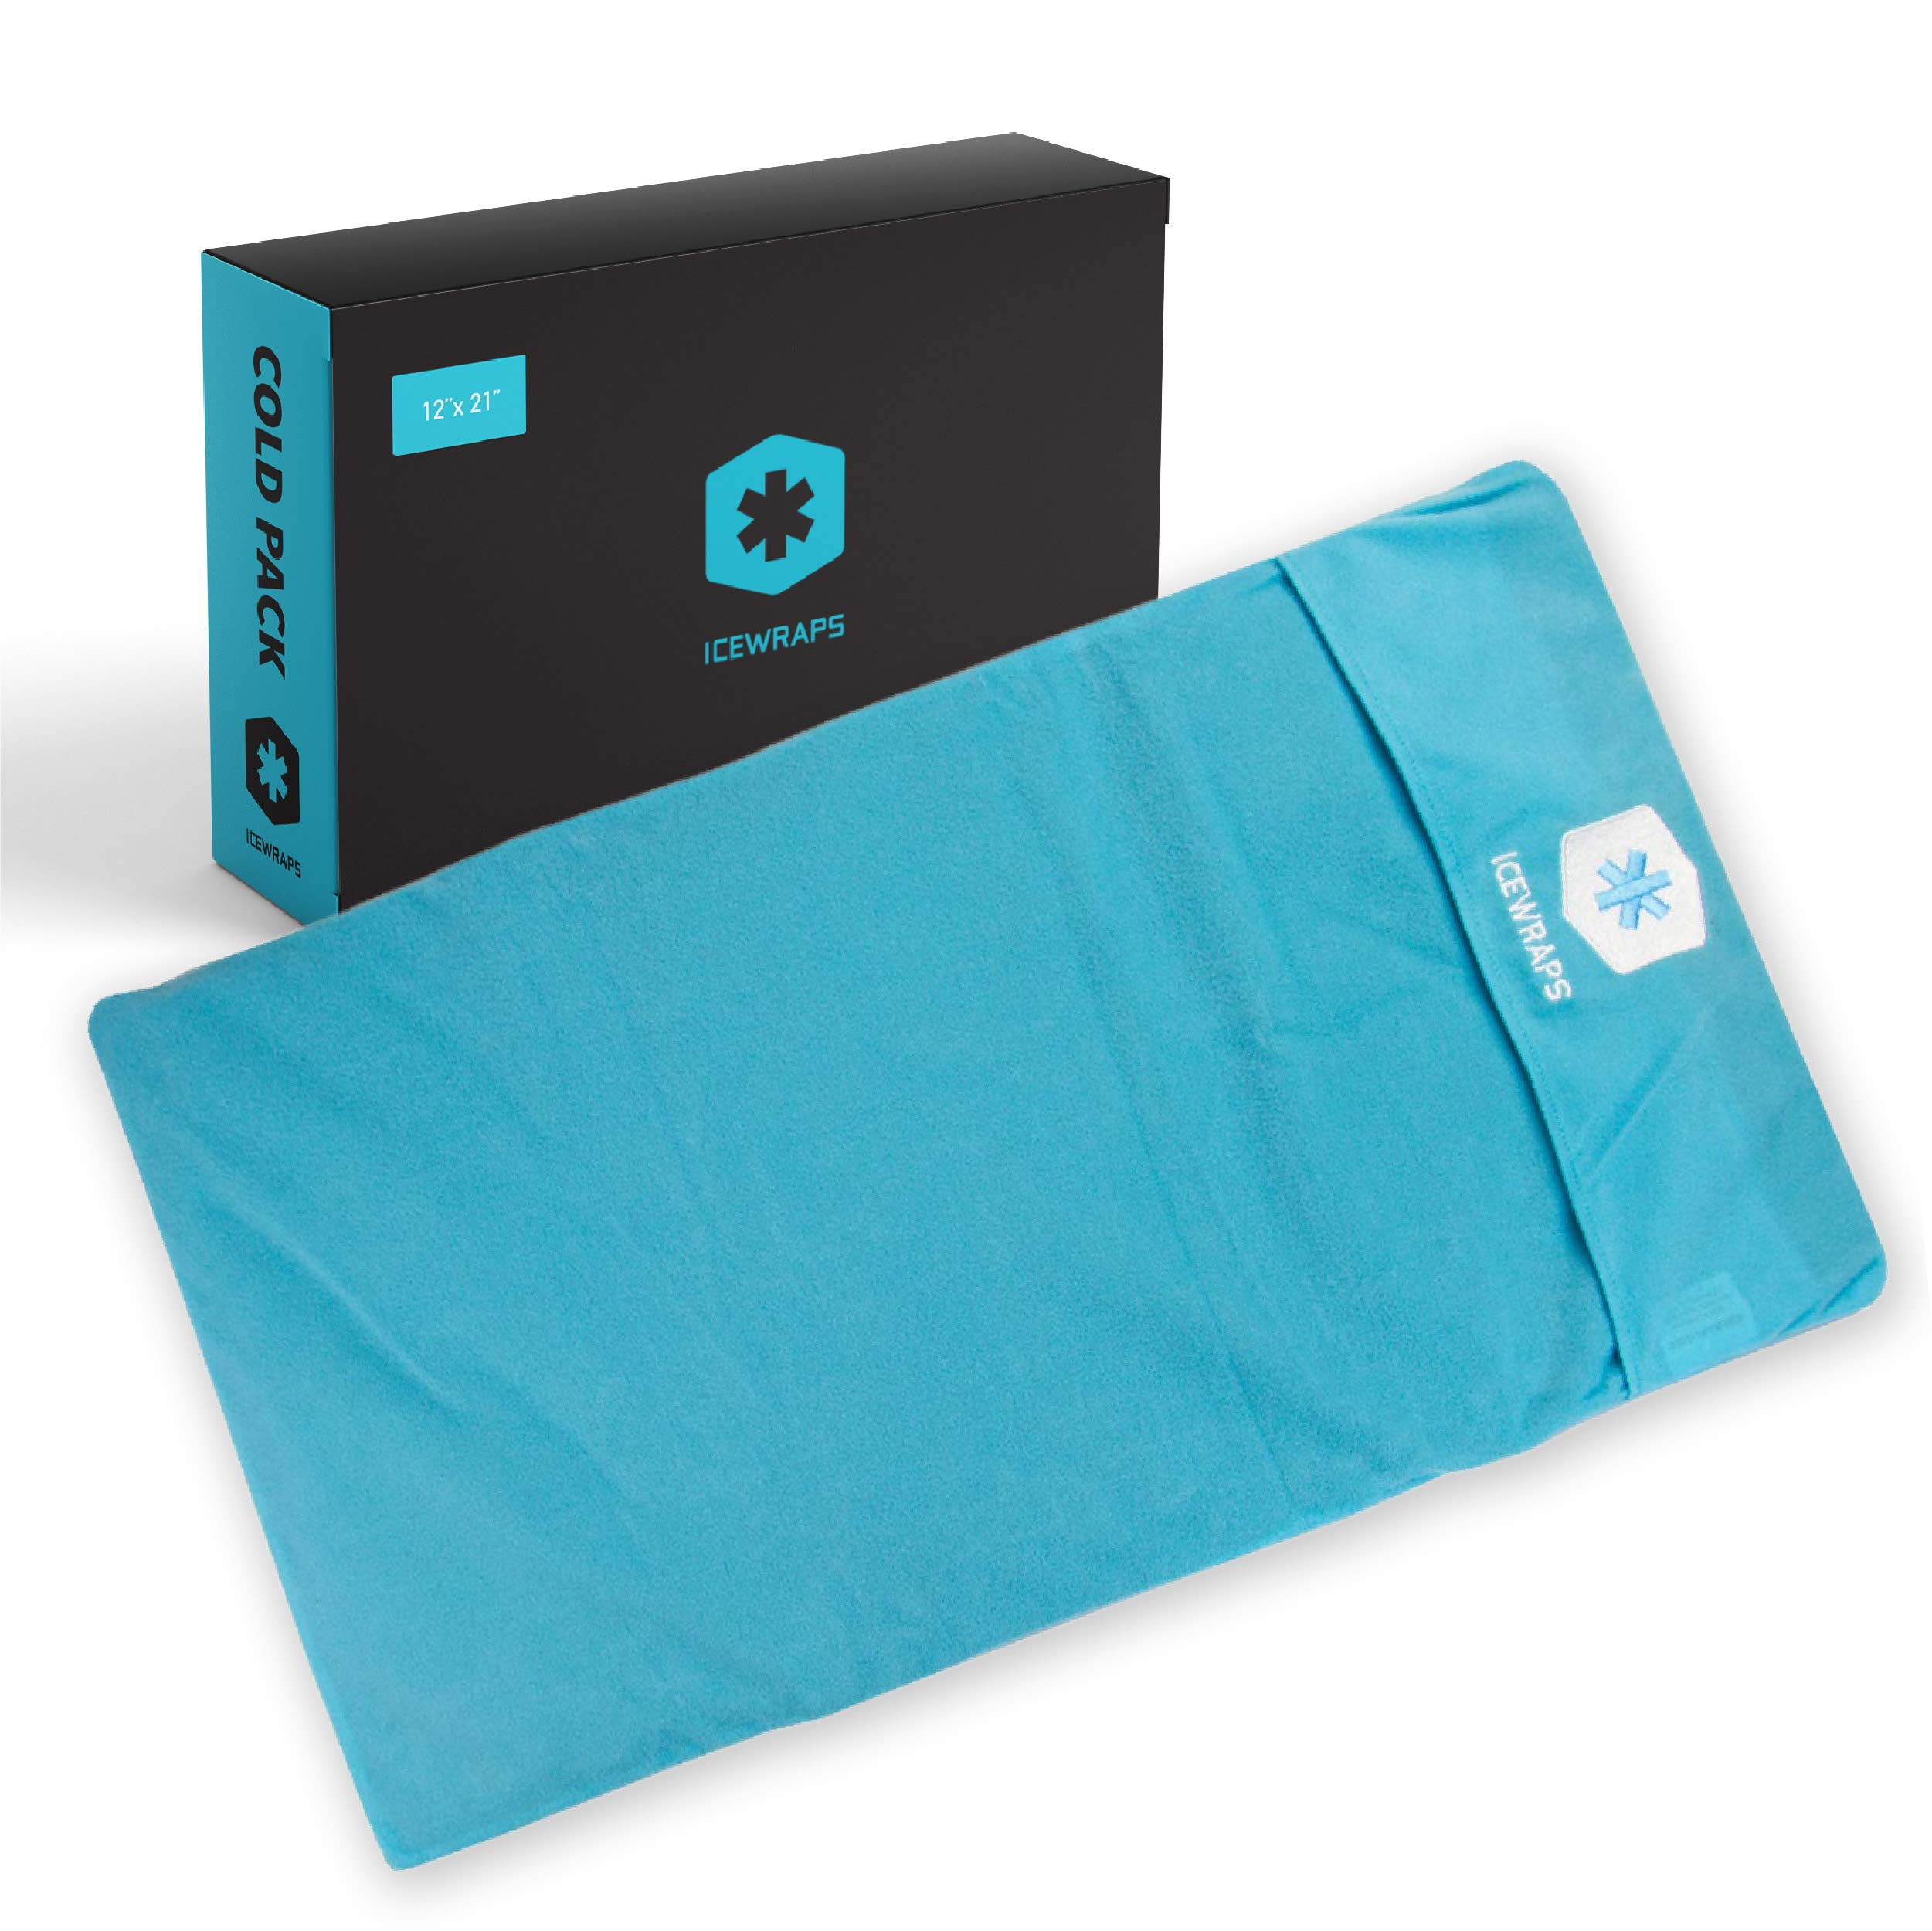 """ICEWRAPS Reusable Gel Ice Pack with Soft Fabric Cover 12""""x21"""" Large Cold Therapy Wrap for Back Injury, Hip or Knee Injuries, Muscle & Chronic Pain Relief 